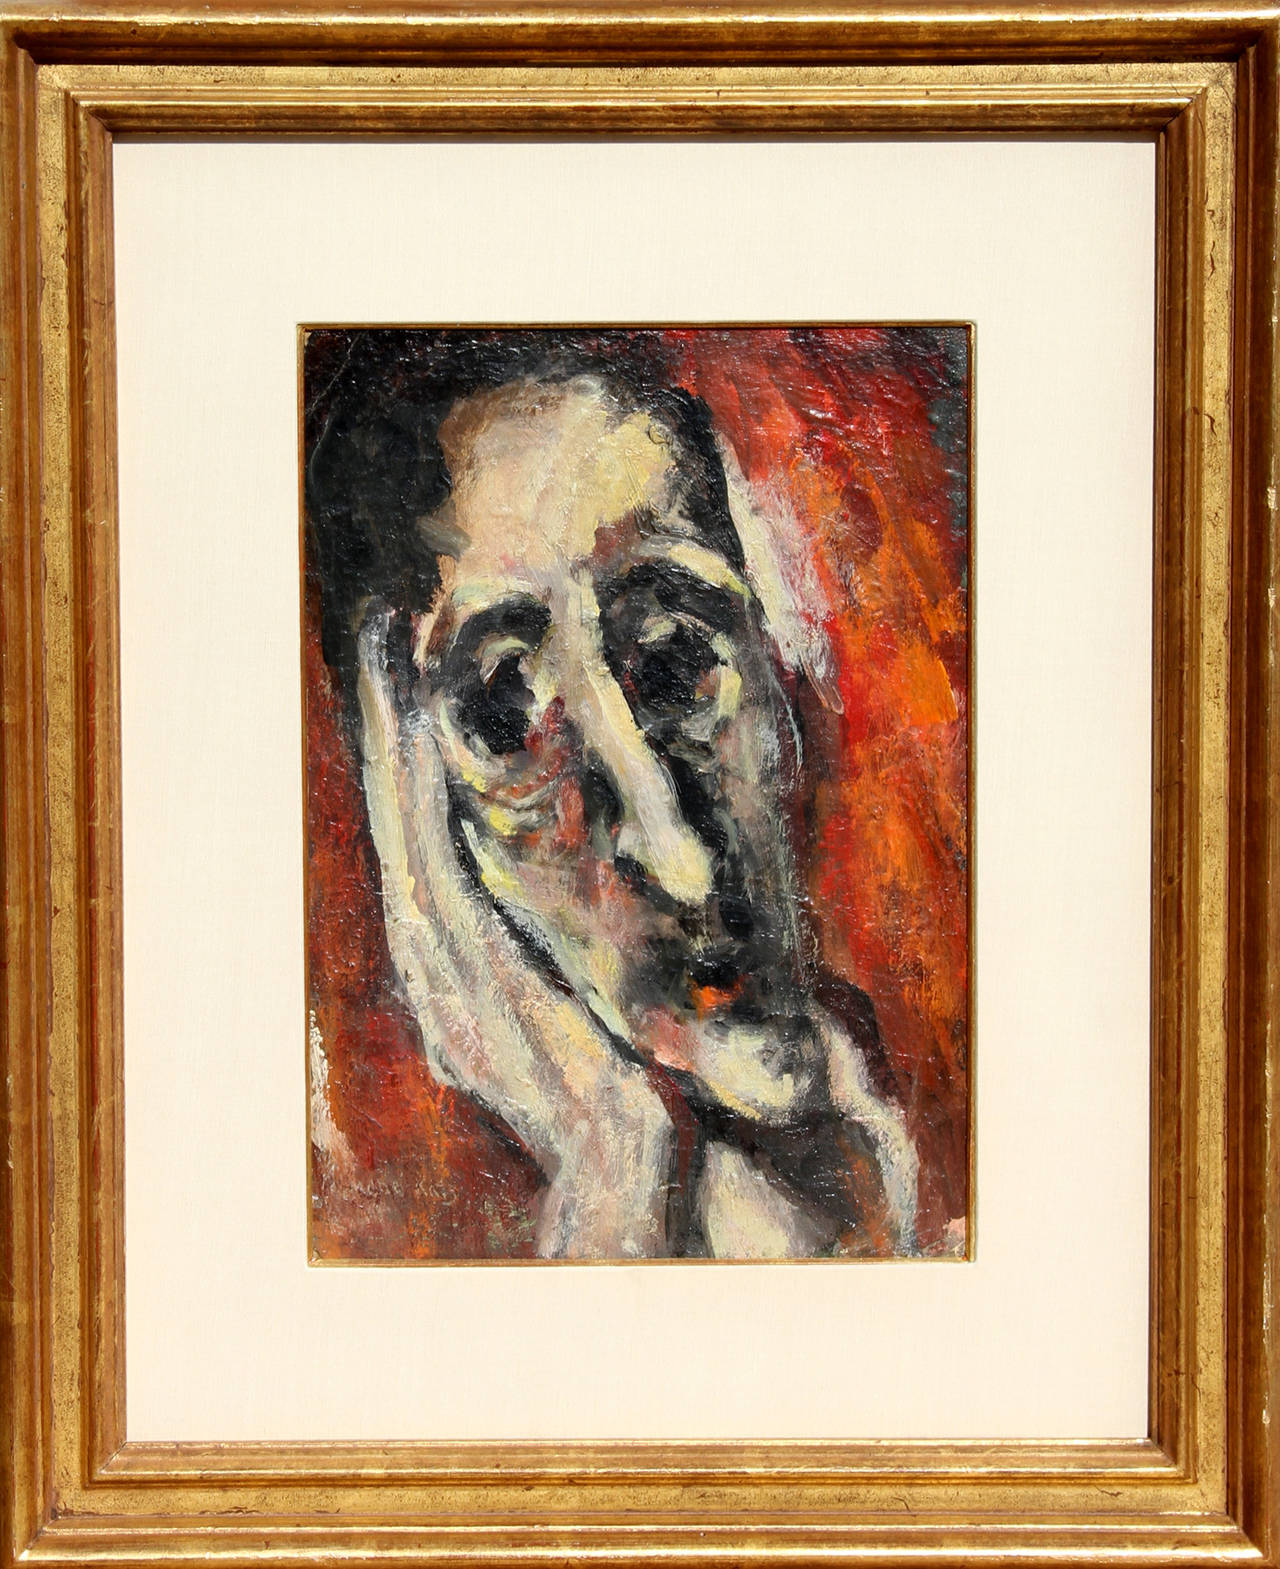 emmanuel mane katz portrait of a man painting for sale